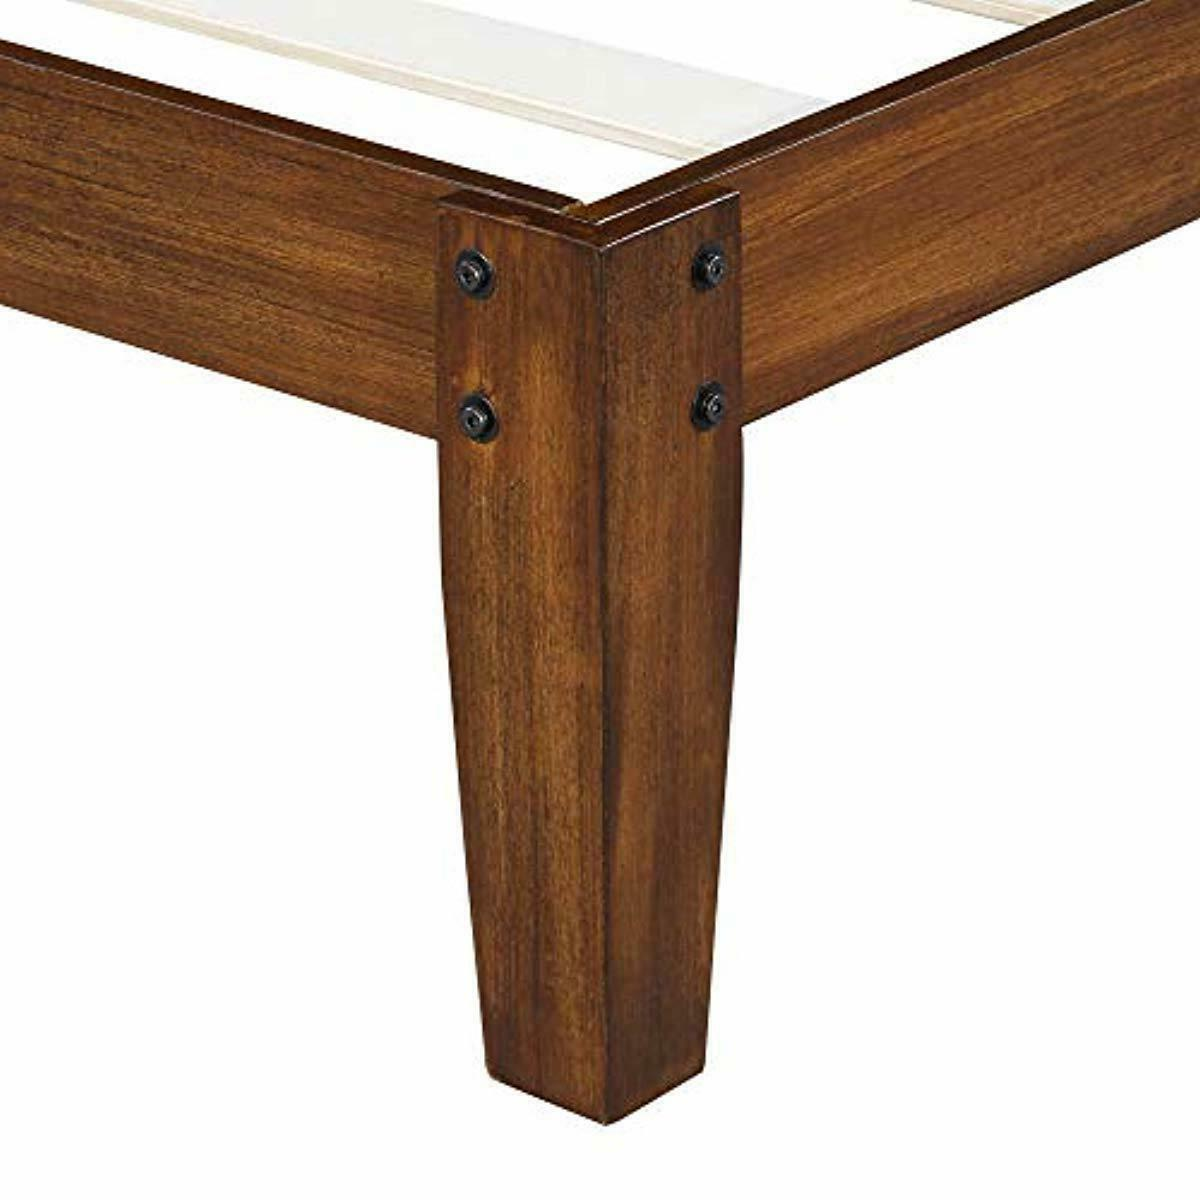 Olee Inch Deluxe Platform with Headboard,Wood Bed Frame Full O